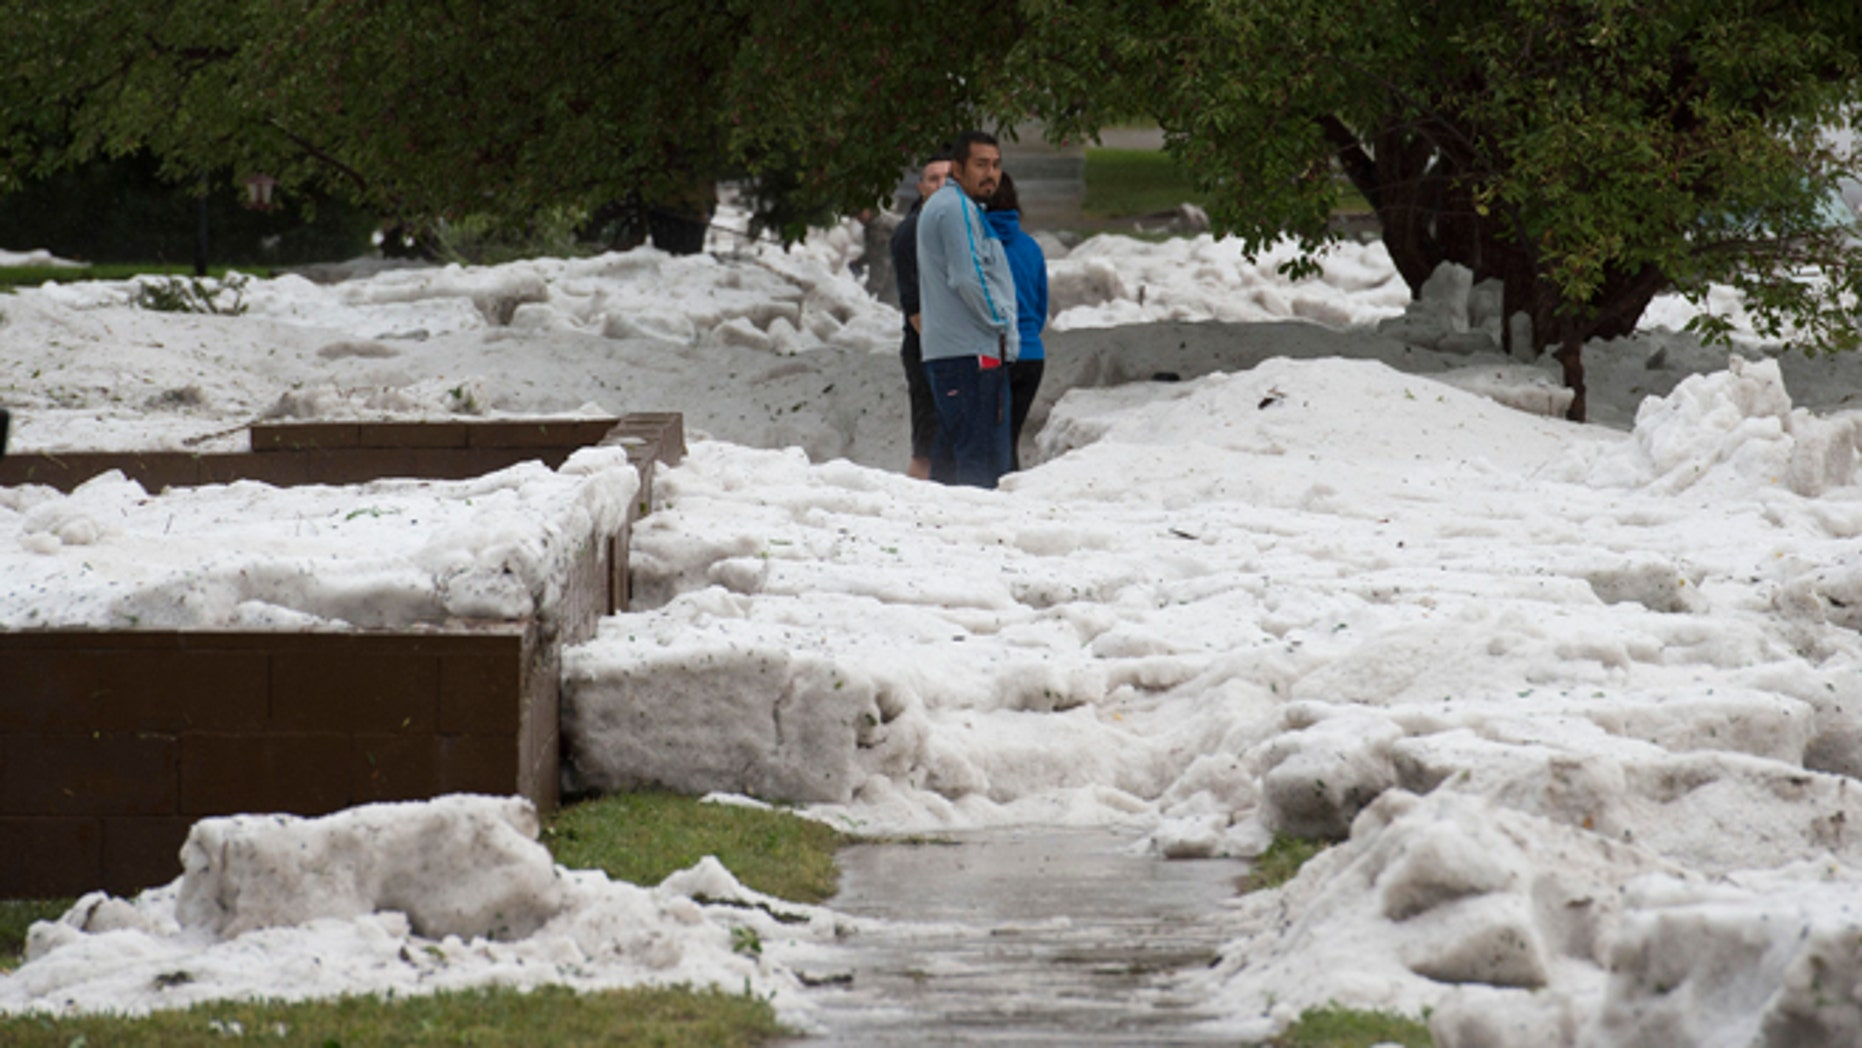 Hail as deep as two feet lies in the front yards of home along Logan Avenue between Platte Avenue and Bijou Street after a storm hit Colorado Springs, Colo., Monday, Aug. 29, 2016.